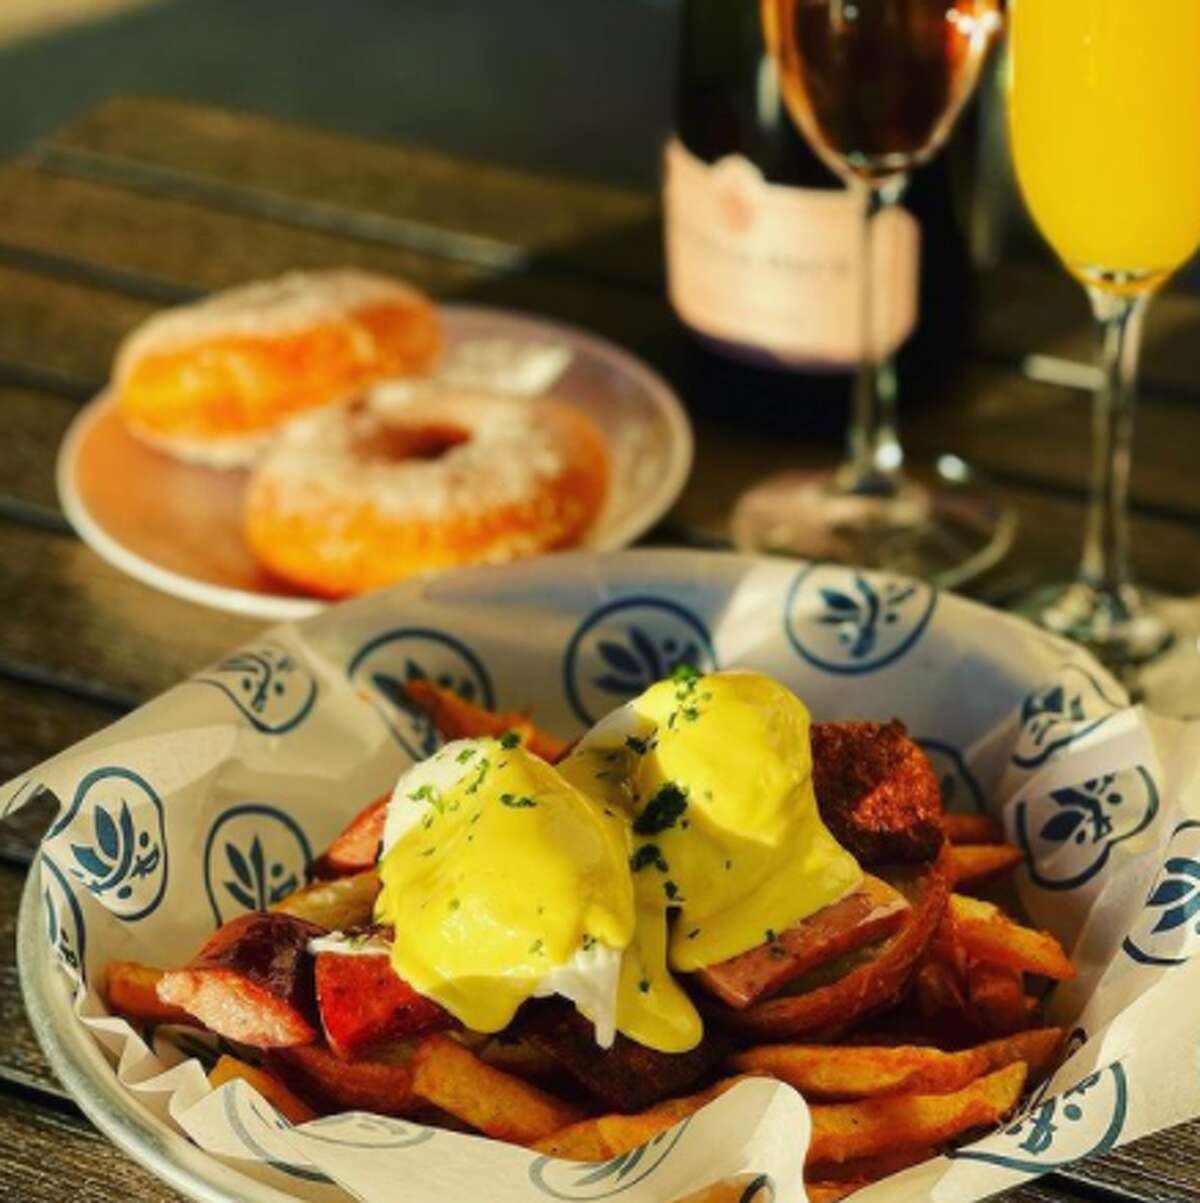 The Southerleigh Hospitality Group's latest extension introduced a new brunch menu on Sunday. A spokeswoman said the restaurant will release a finalized menu soon. The offerings as they stand now are on brand with Southerleigh's southern-style fare.